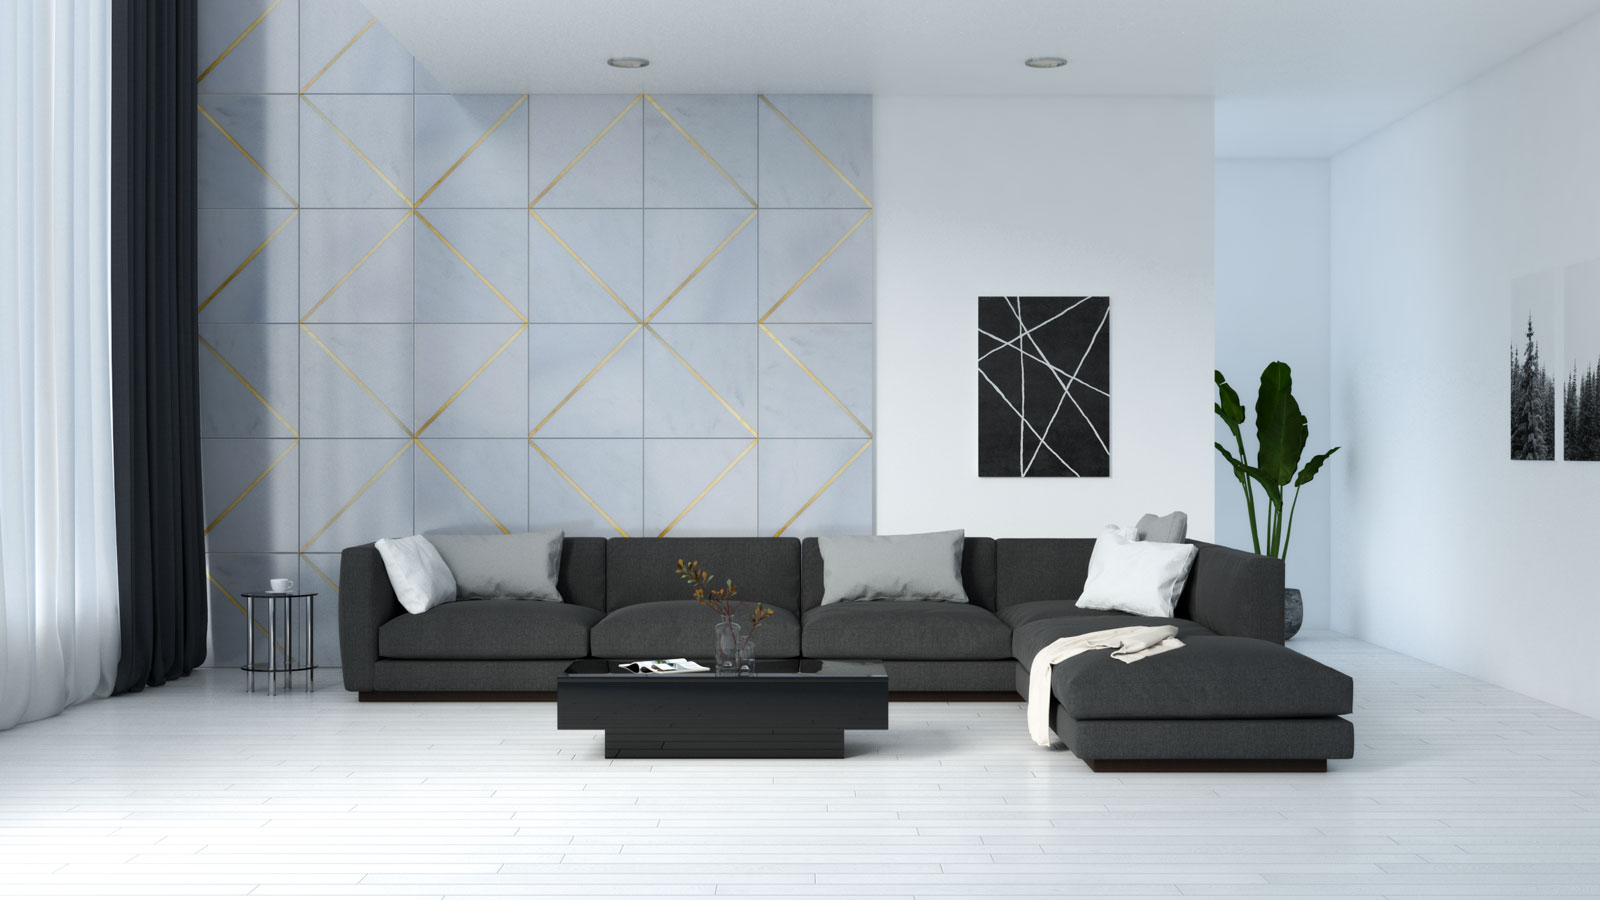 Black furniture in living room with white wooden flooring